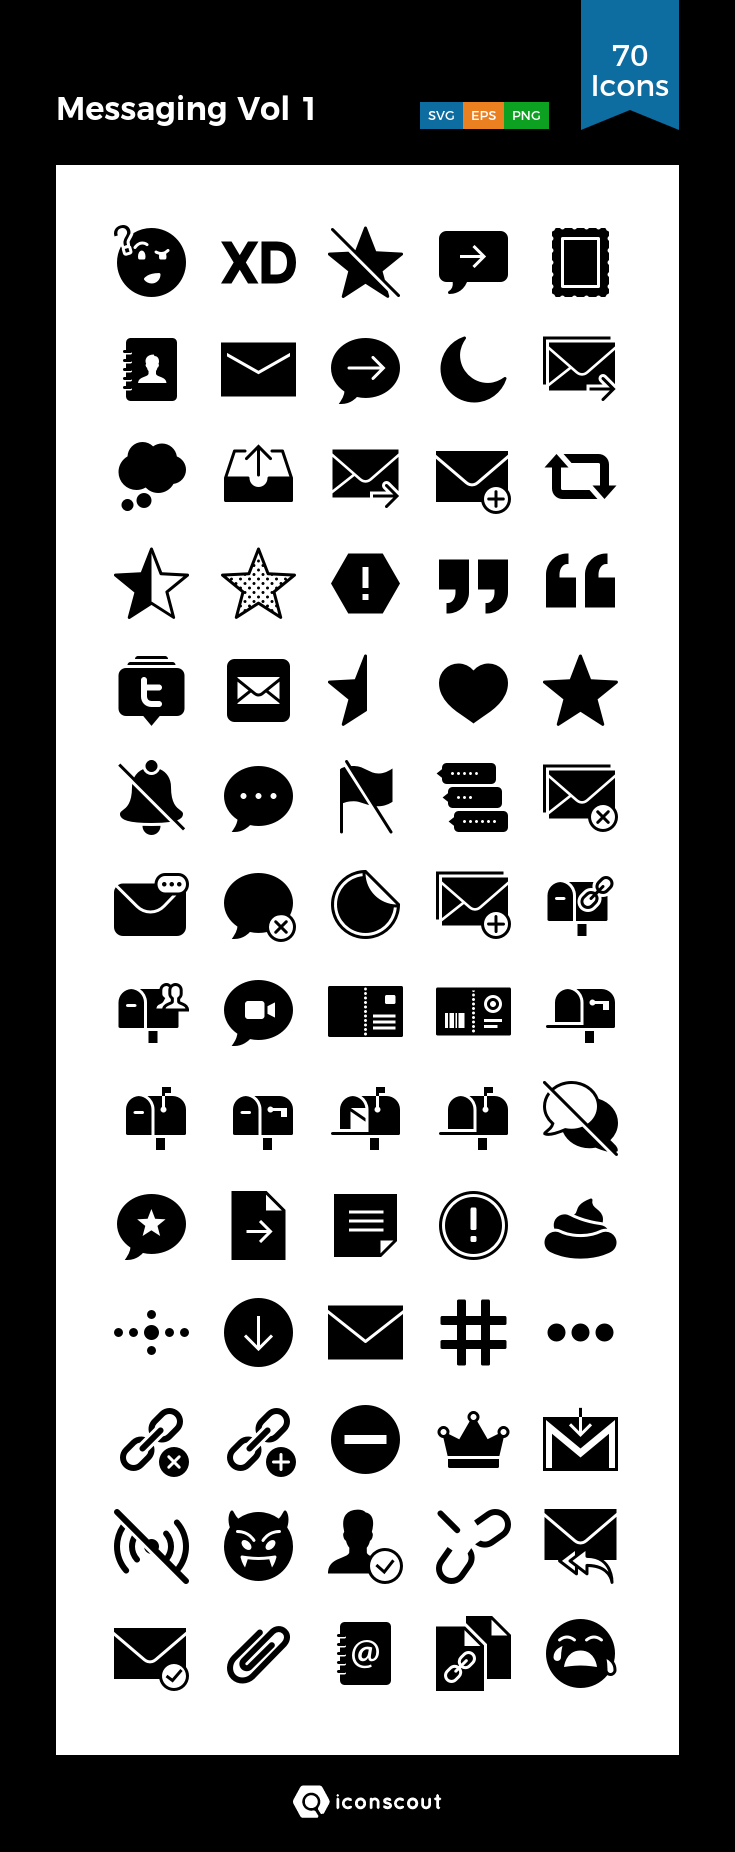 Download Messaging Vol 1 Icon pack Available in SVG, PNG